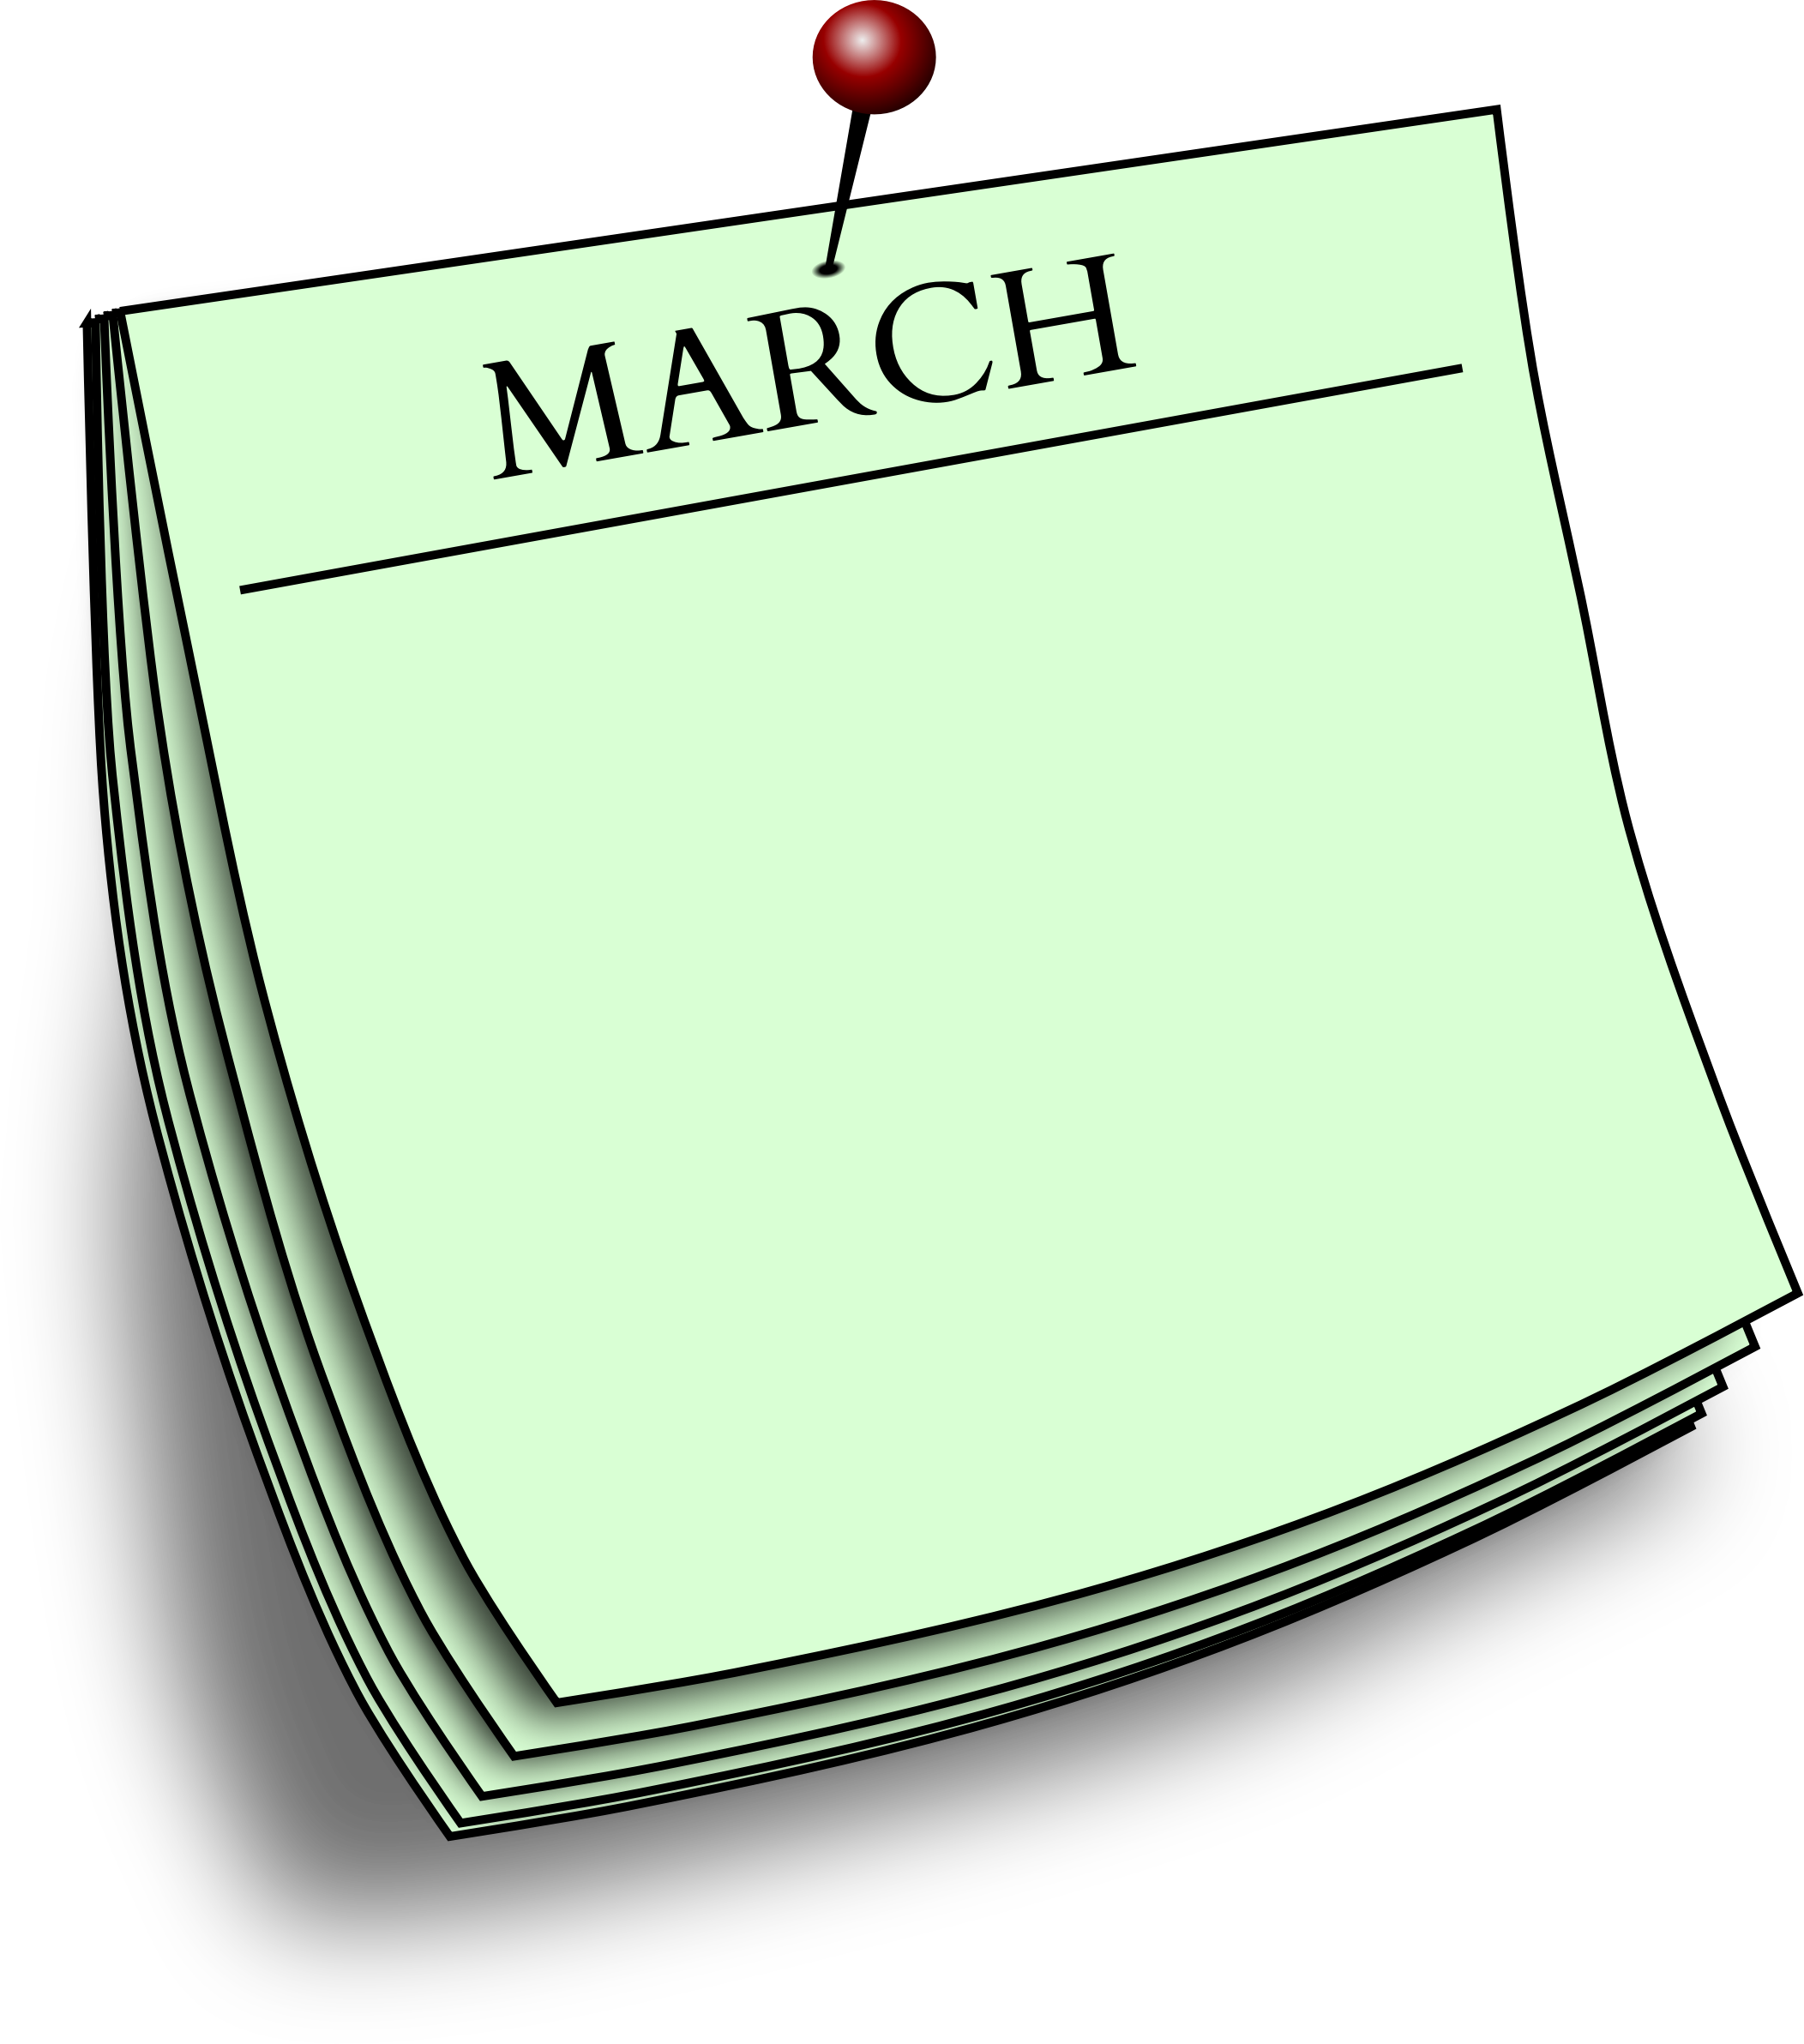 Monthly note - March by Firkin